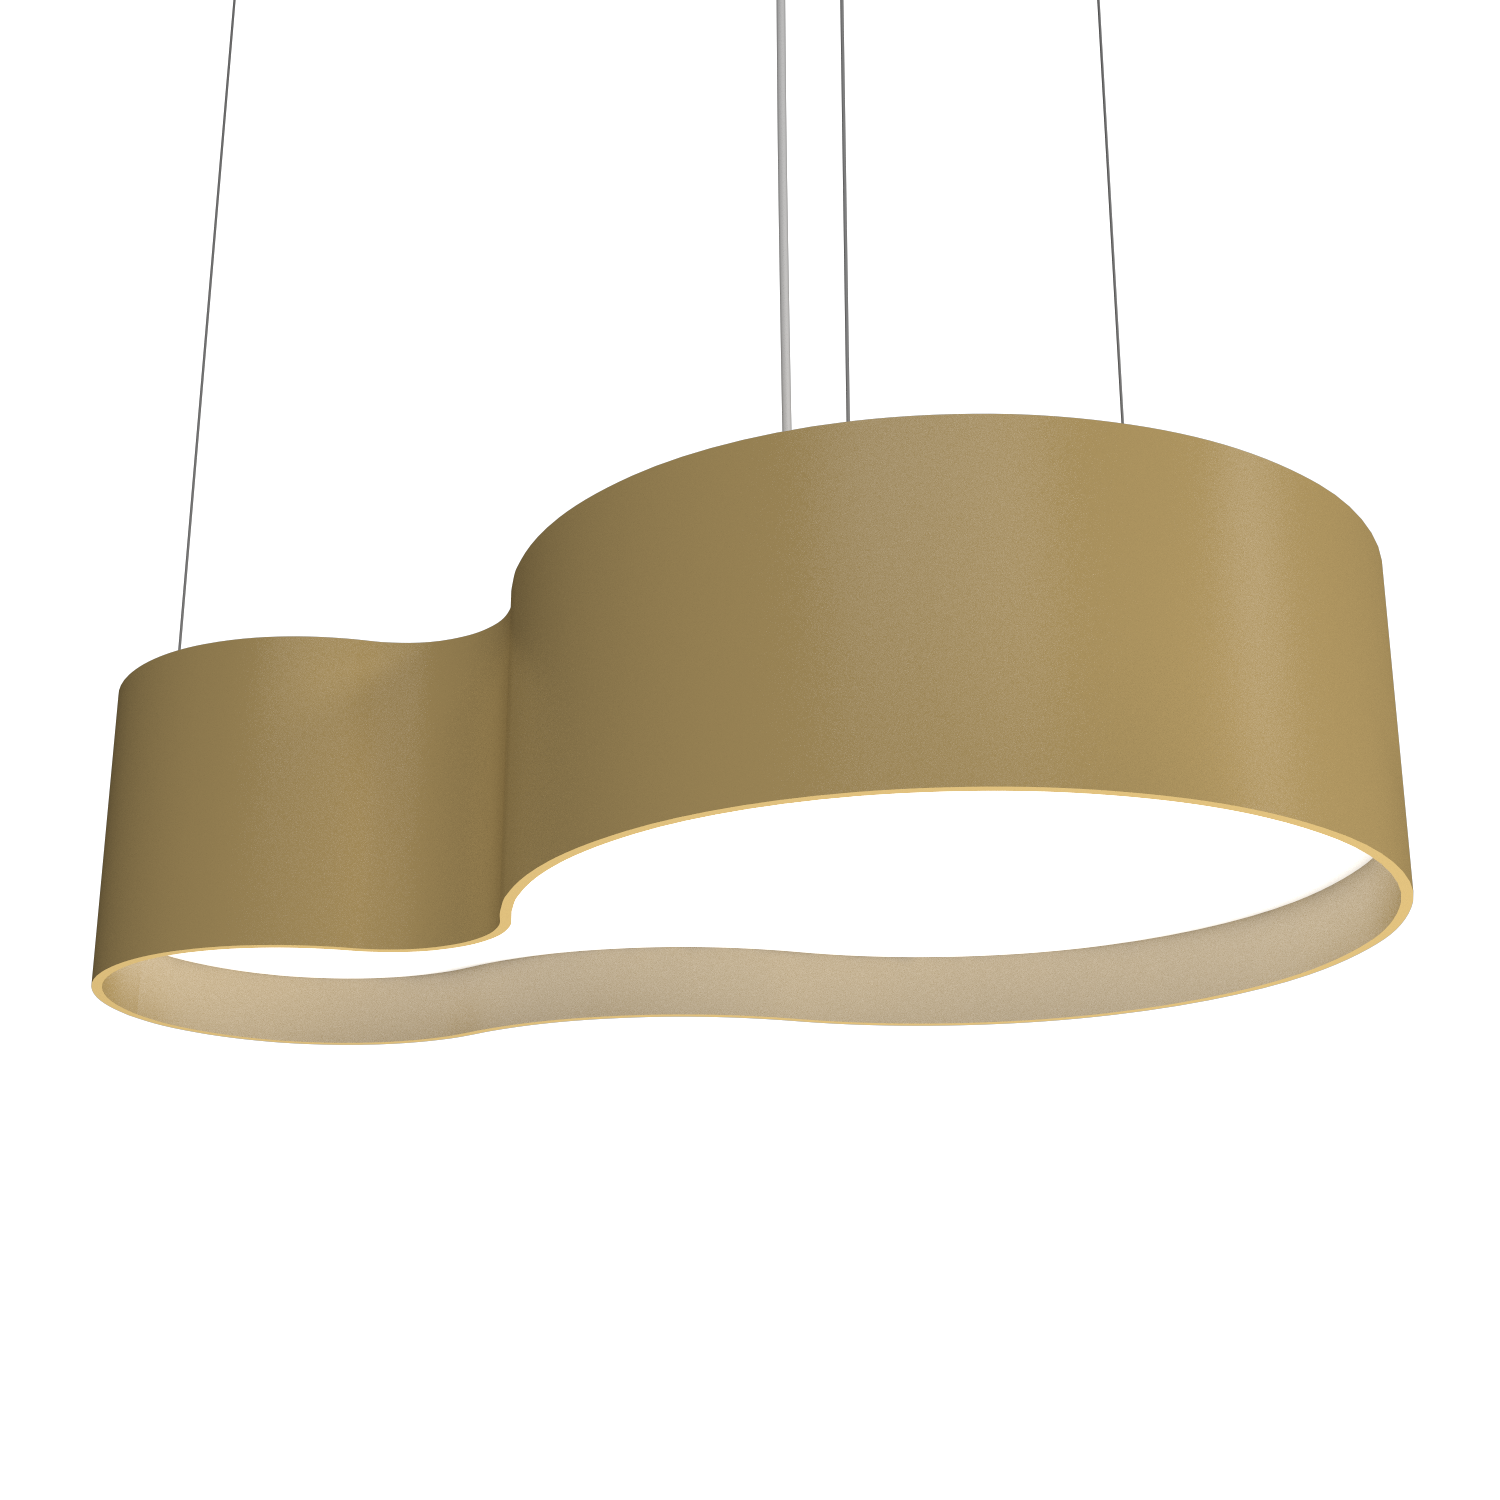 Pendant Lamp Accord Orgânico 285 - Orgânica Line Accord Lighting | Pale Gold